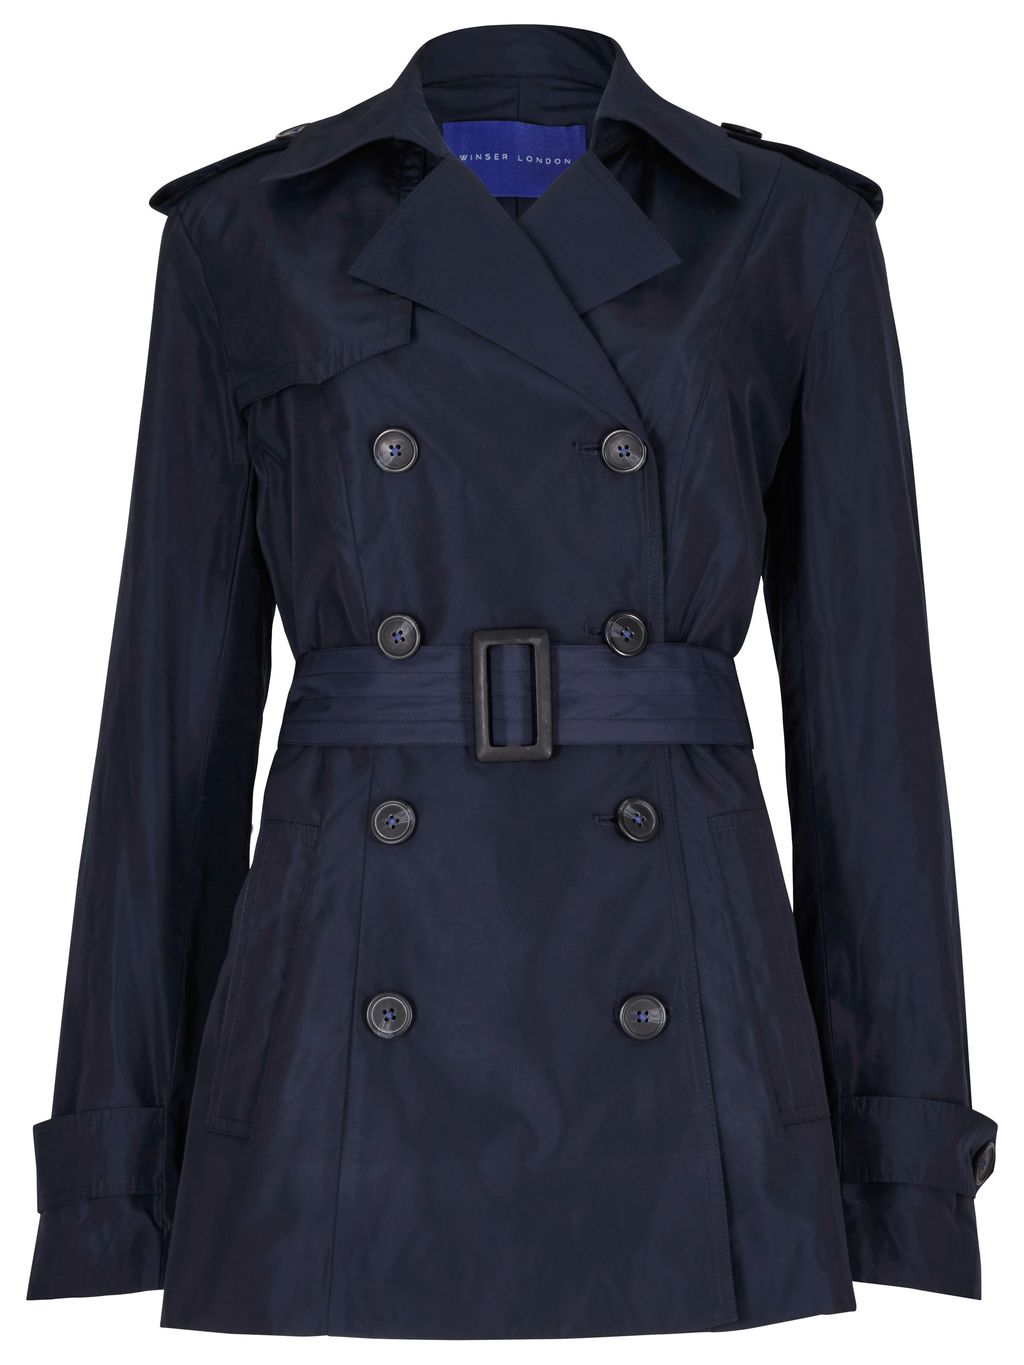 Winser Short Trench, Navy - pattern: plain; length: standard; style: trench coat; collar: standard lapel/rever collar; predominant colour: navy; occasions: casual; fit: tailored/fitted; fibres: polyester/polyamide - 100%; waist detail: belted waist/tie at waist/drawstring; sleeve length: long sleeve; sleeve style: standard; collar break: medium; pattern type: fabric; texture group: woven bulky/heavy; season: s/s 2016; wardrobe: basic